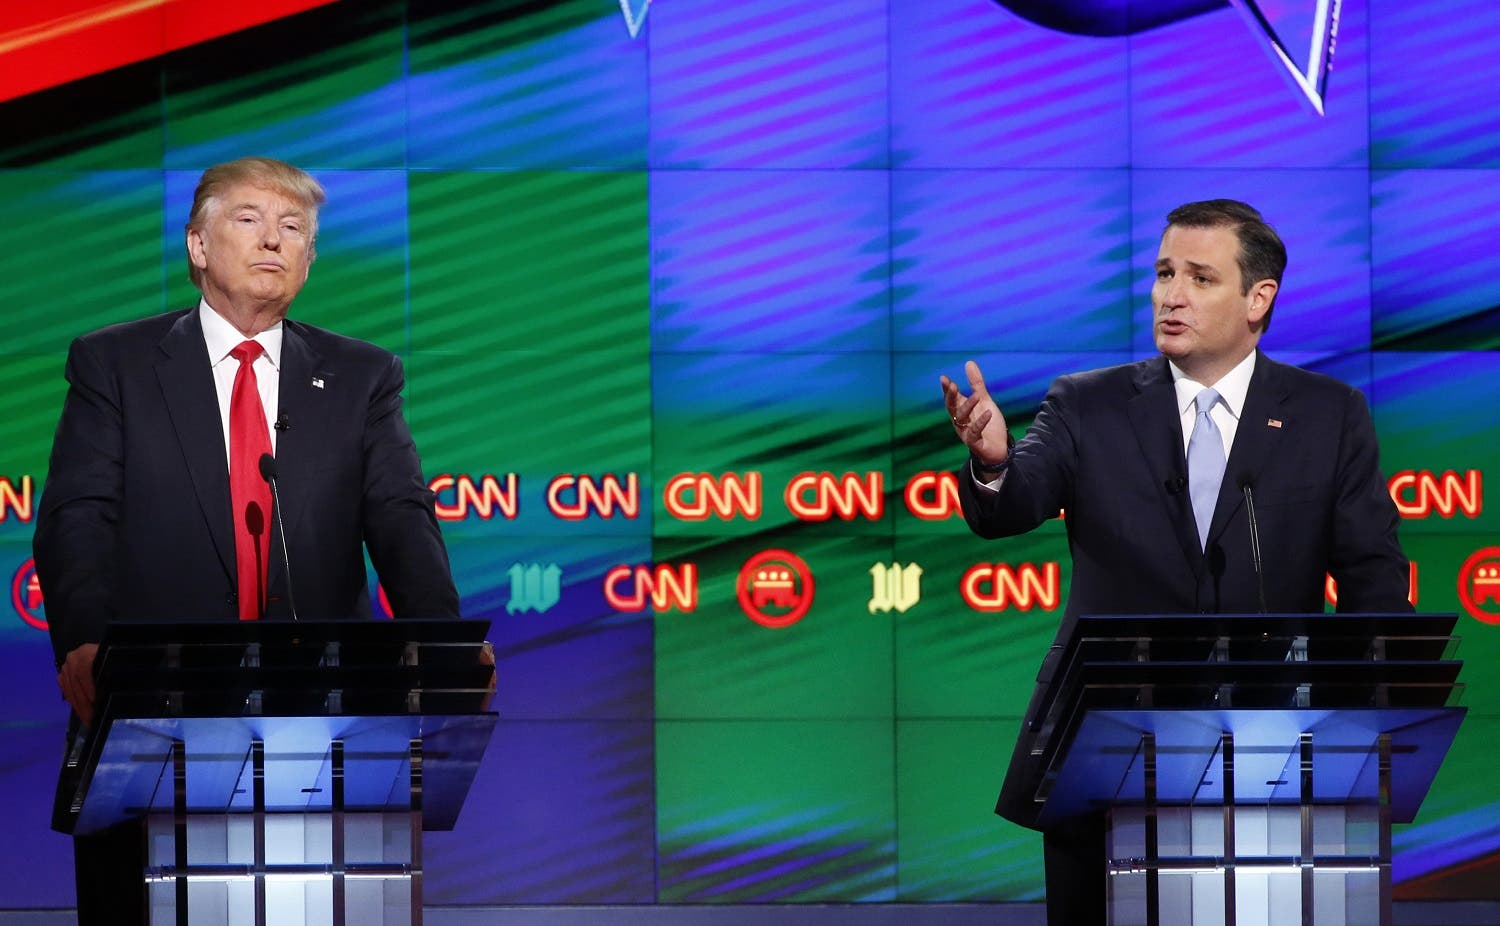 Republican presidential candidate, Sen. Ted Cruz, R-Texas, speaks as Republican presidential candidate, businessman Donald Trump listens, during the Republican presidential debate sponsored by CNN, Salem Media Group and the Washington Times at the University of Miami, Thursday, March 10, 2016, in Coral Gables, Fla. (AP)